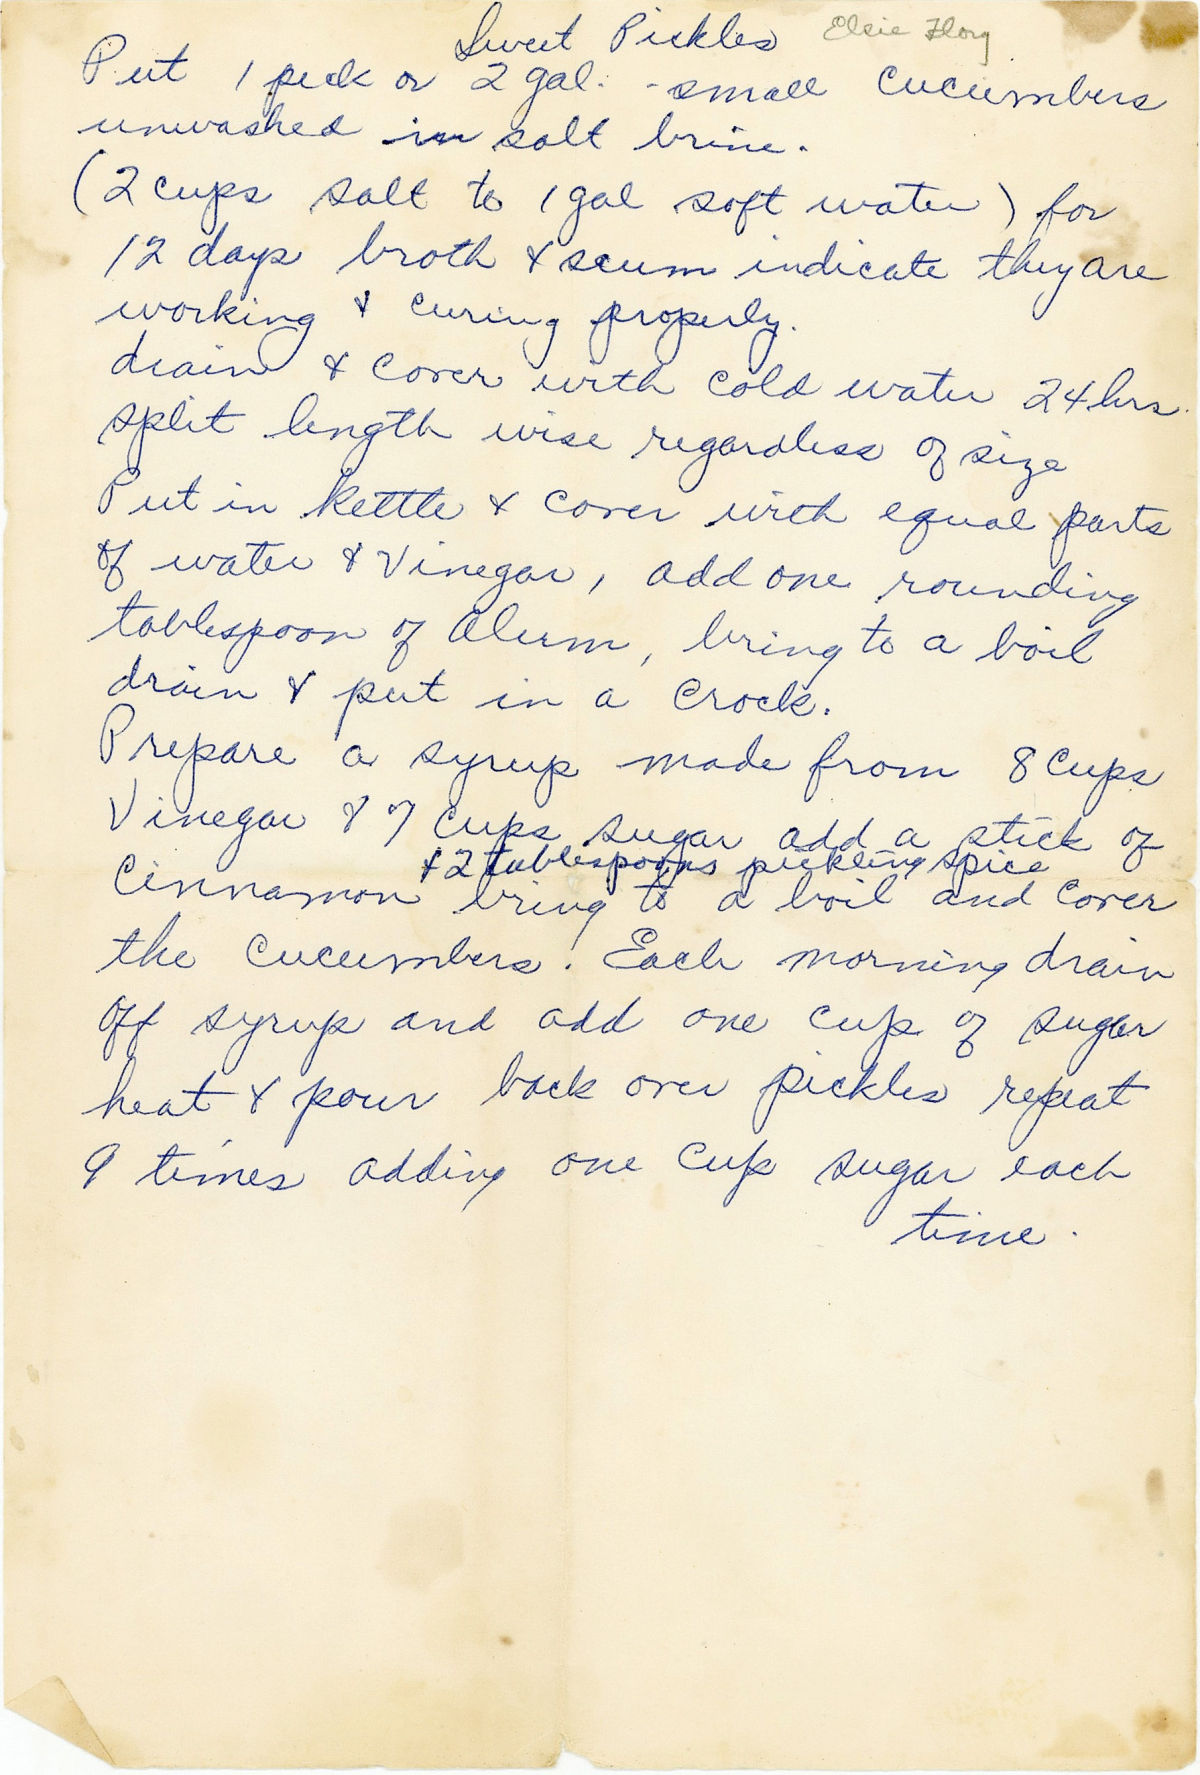 Vintage sweet cured pickles recipe